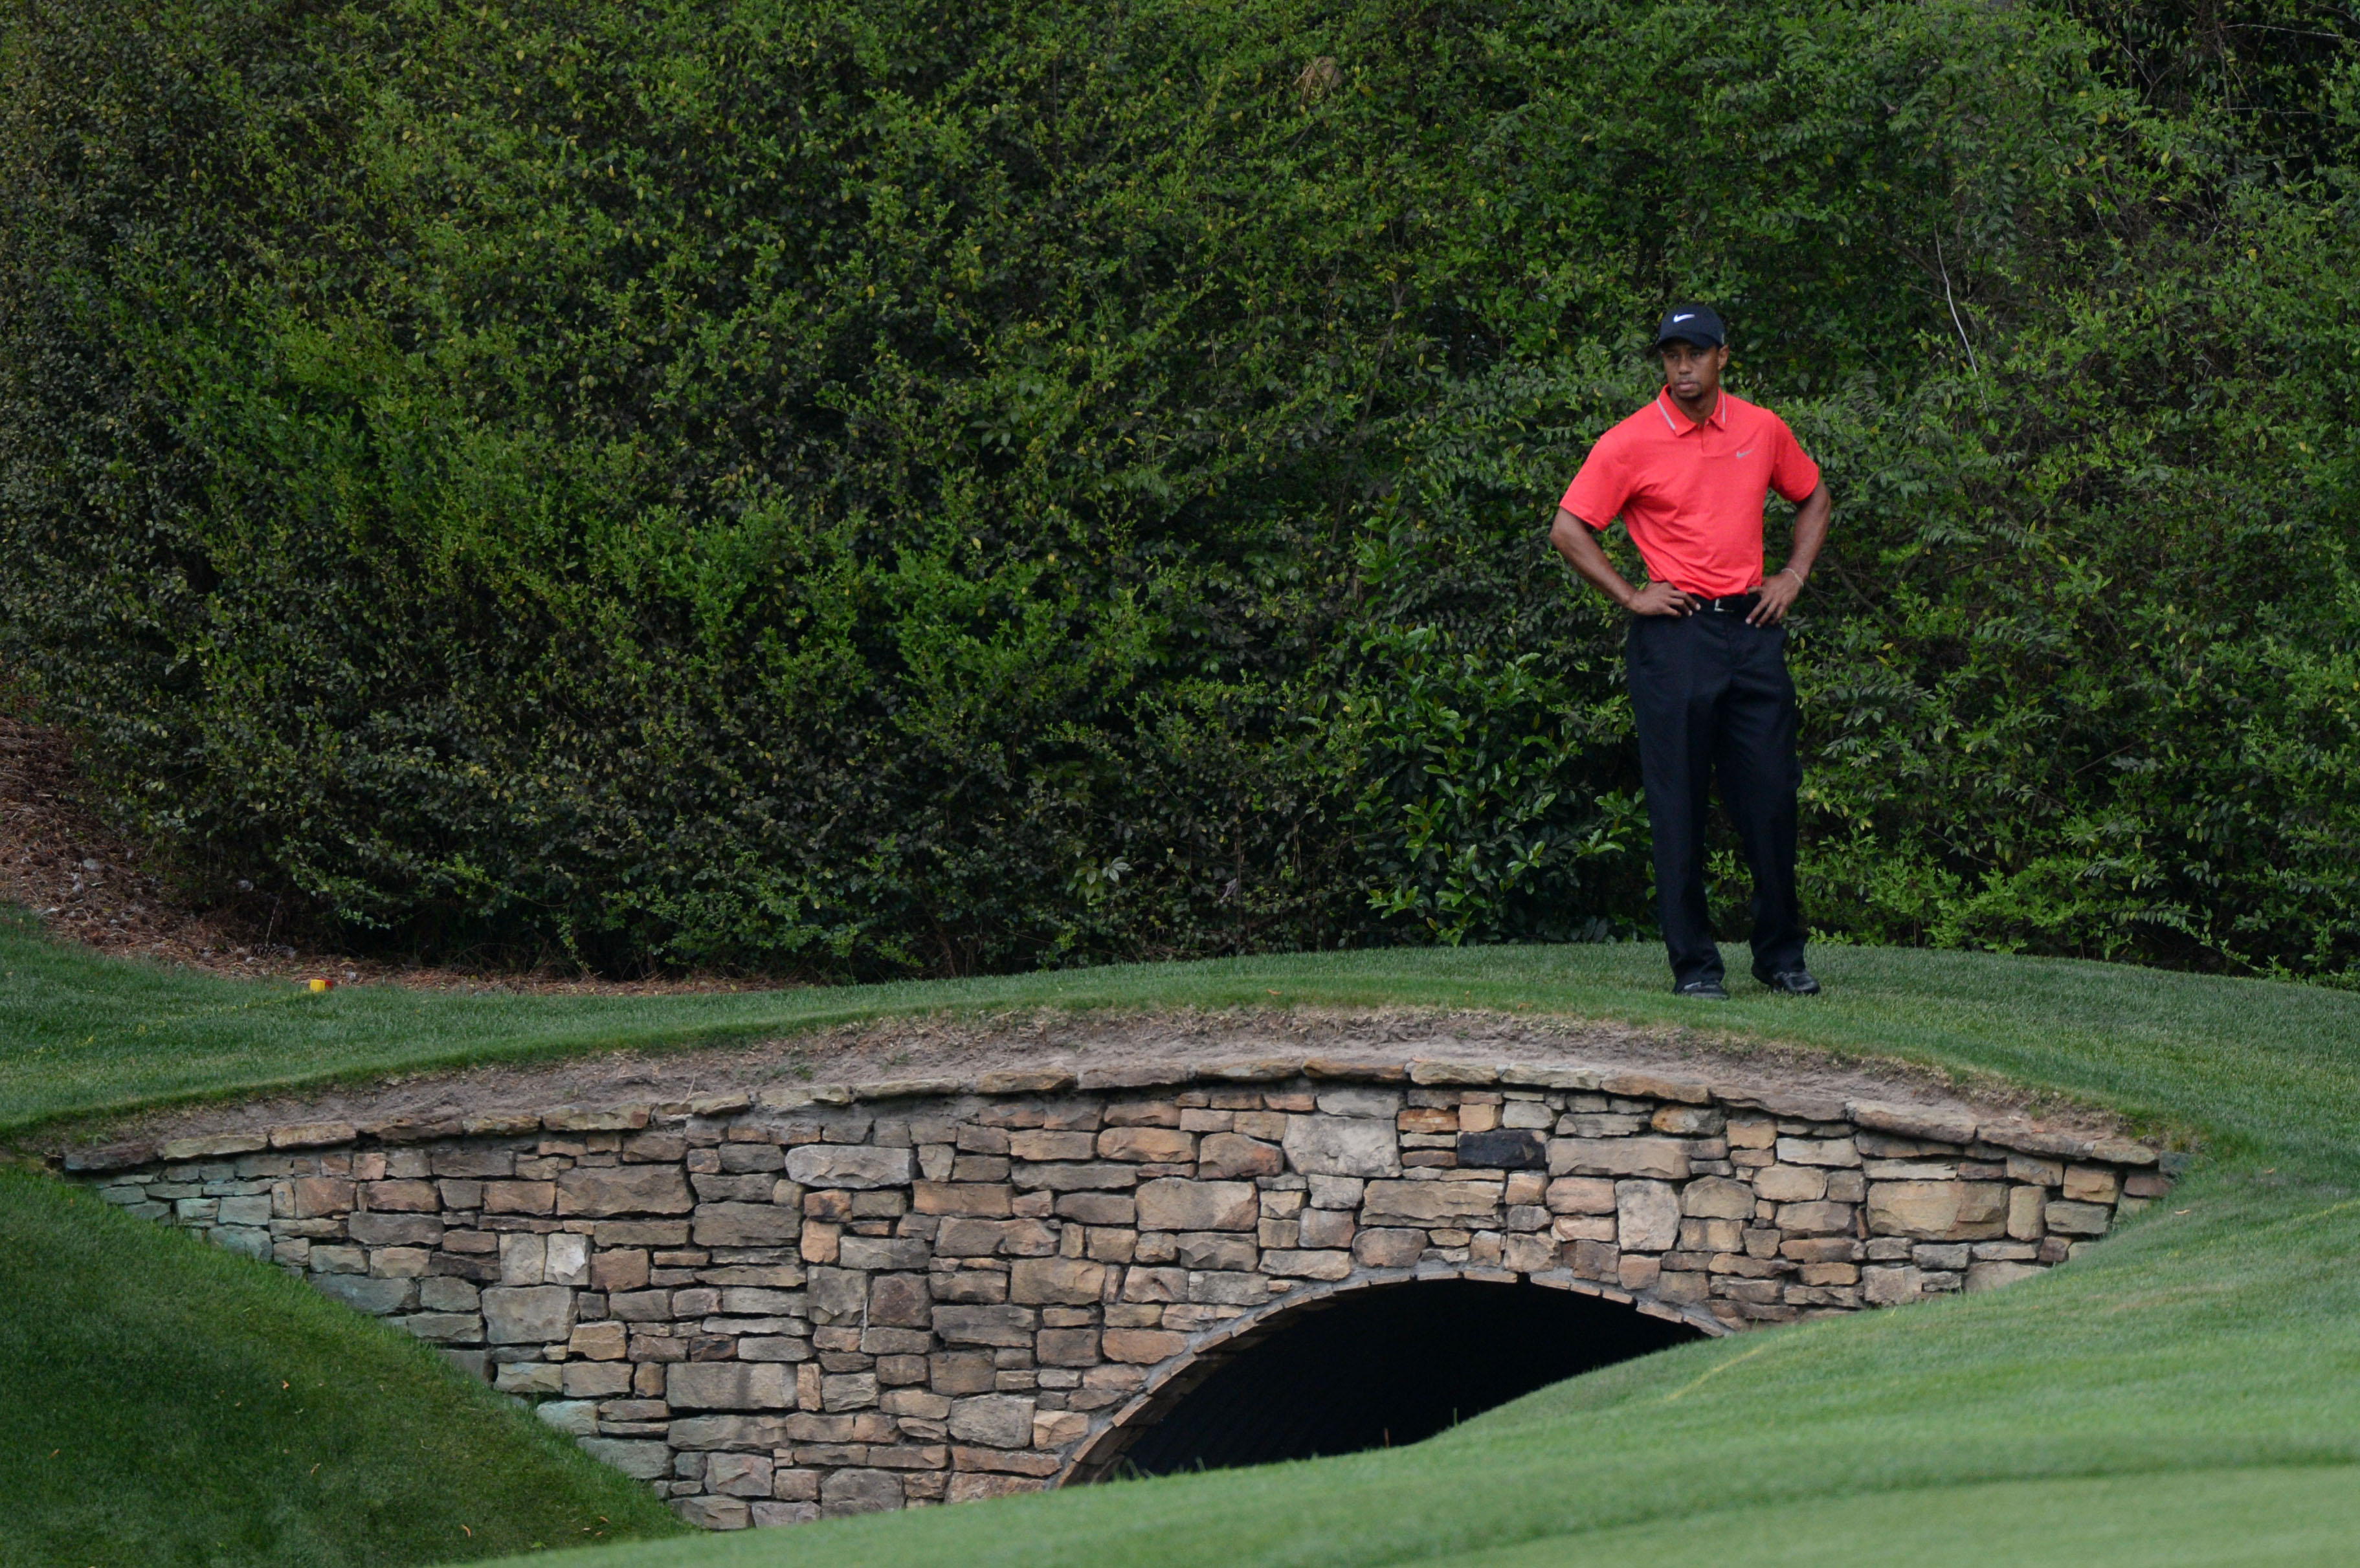 Should Tiger Woods skip the Masters?